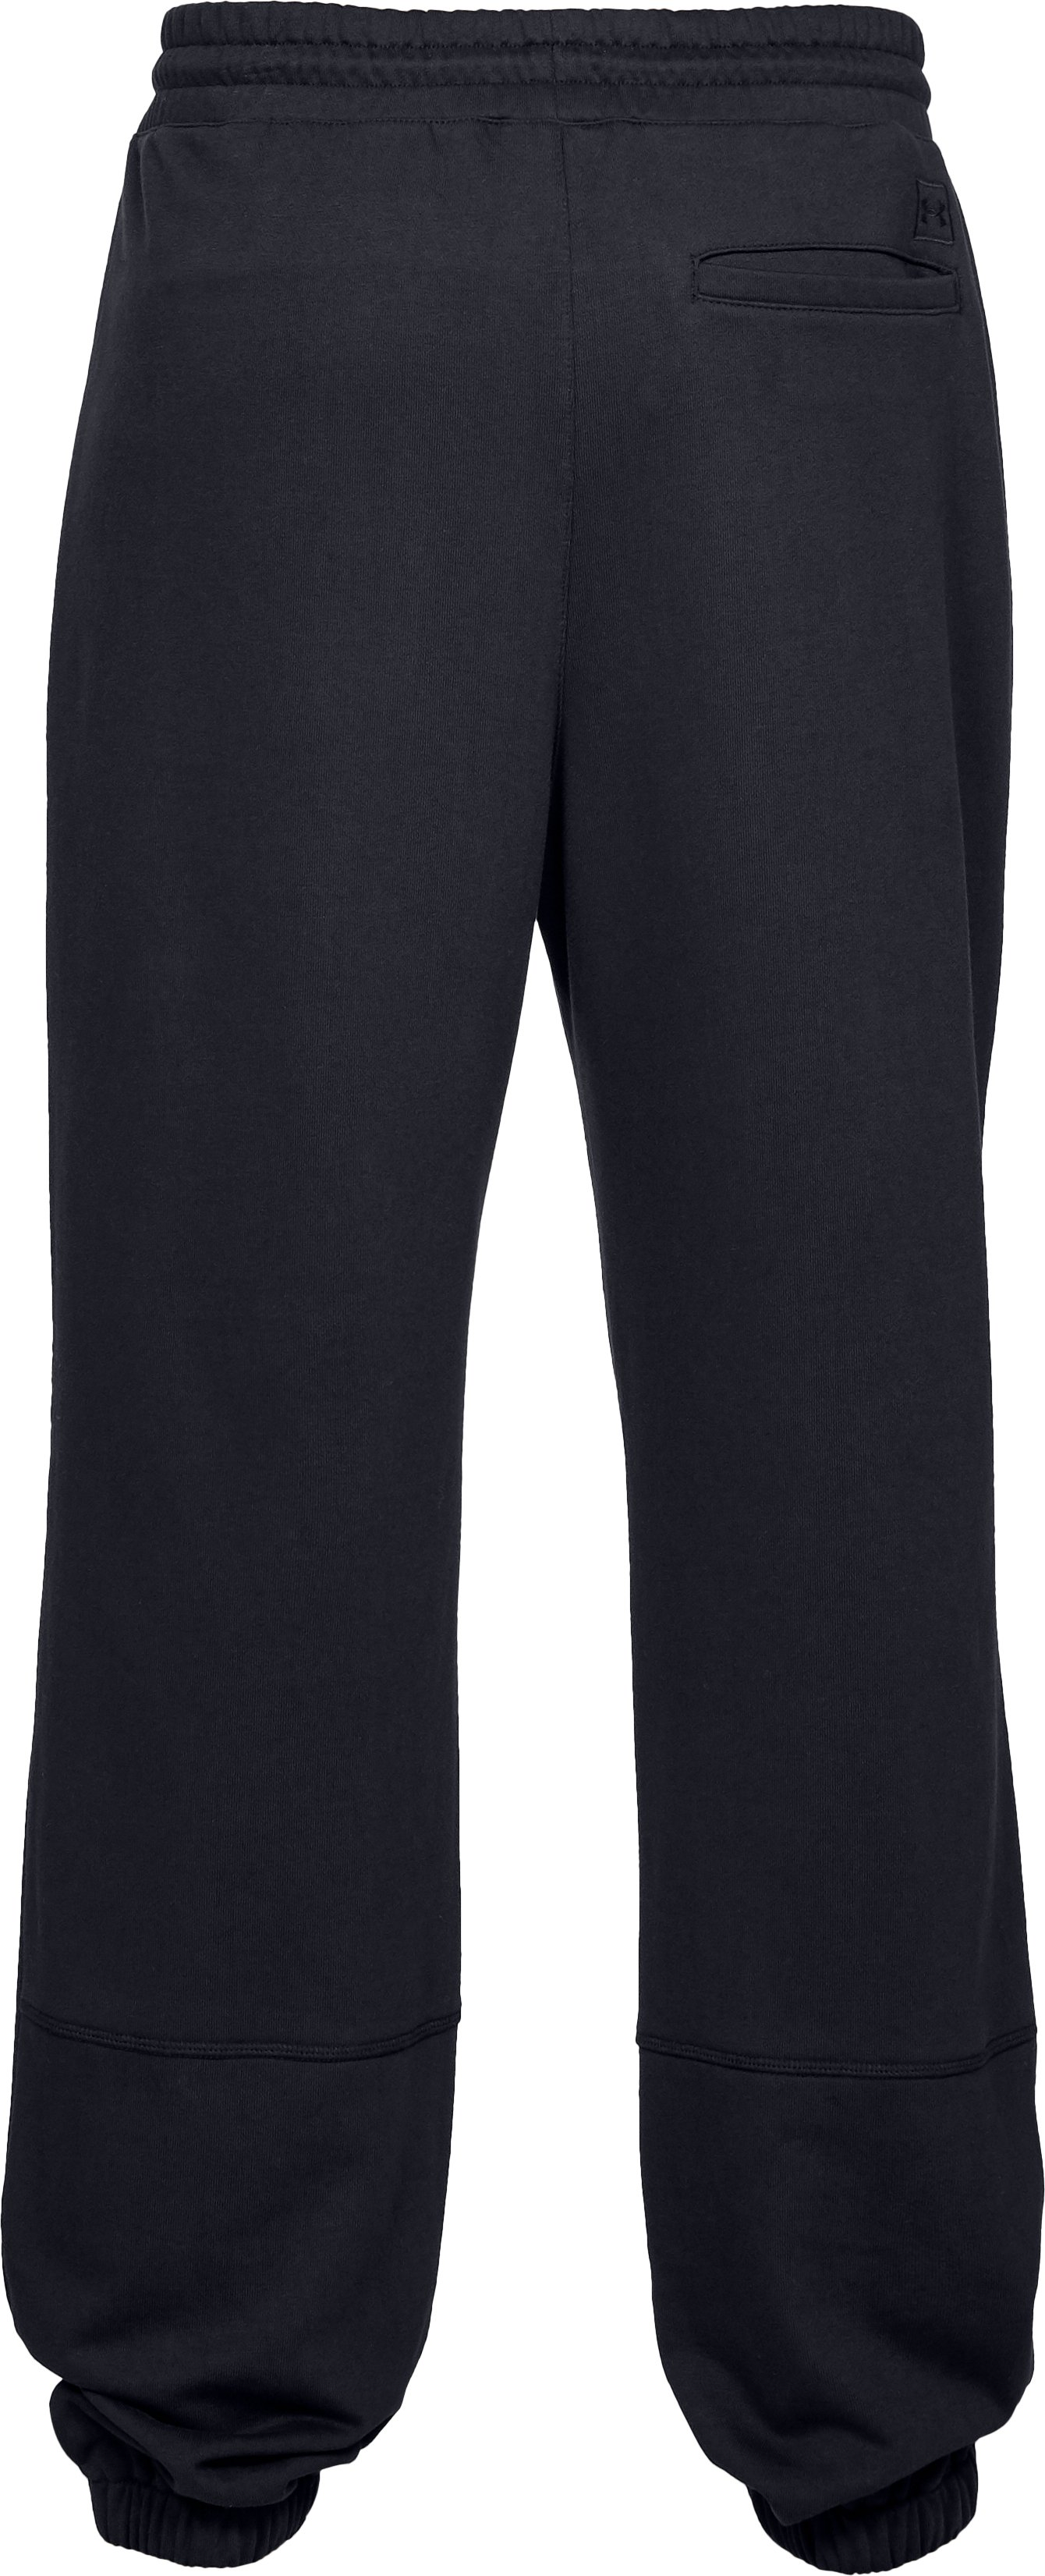 Men's UA Be Seen Sweatpants, Black ,